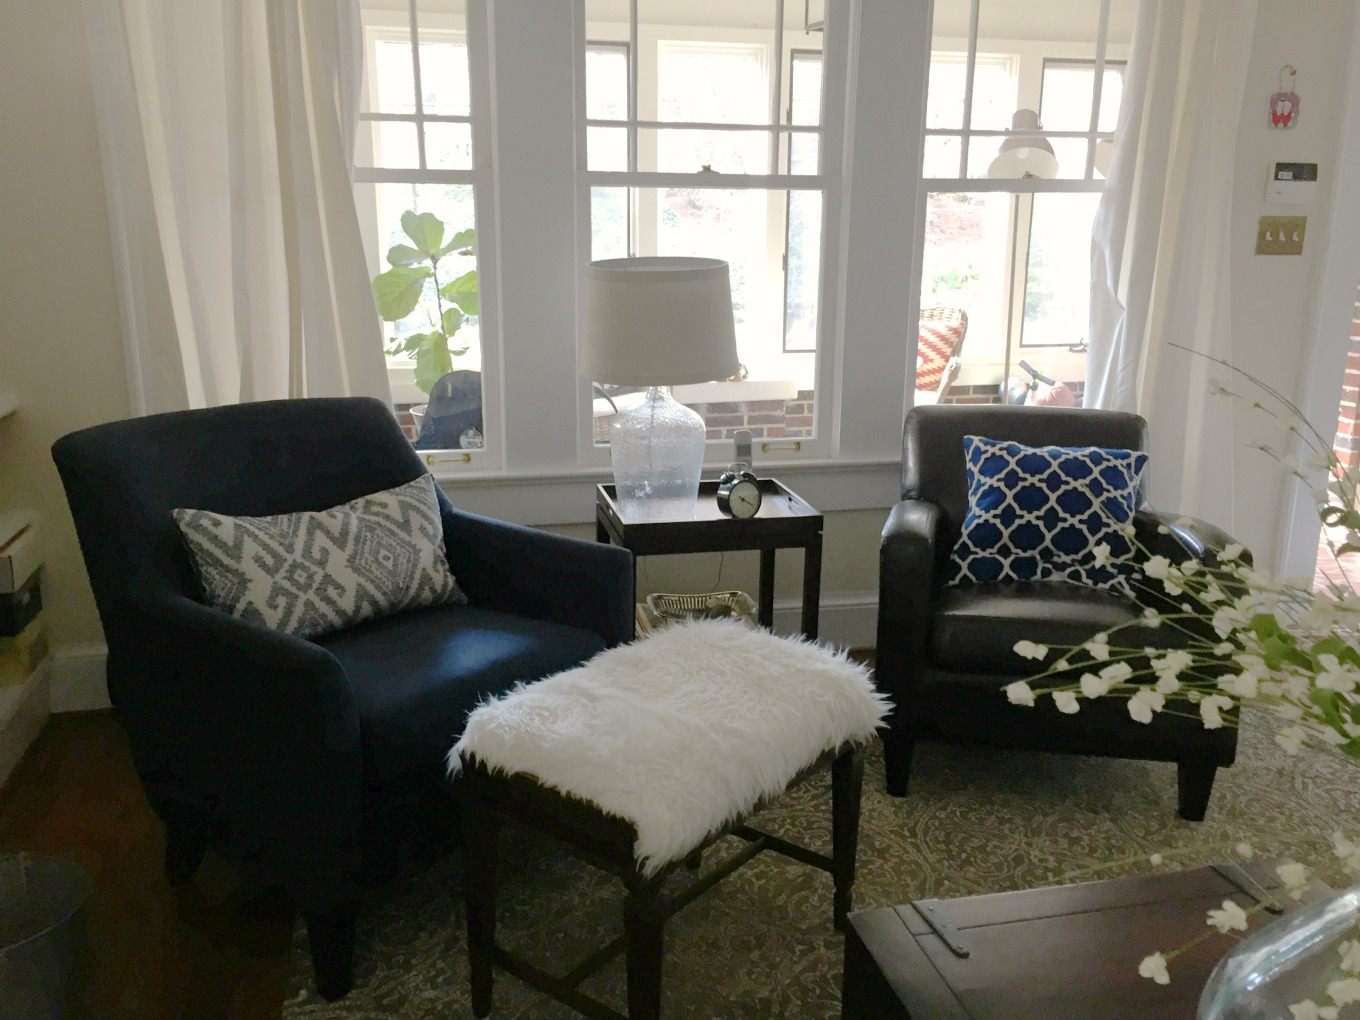 Living room transformation for spring - thediybungalow.com